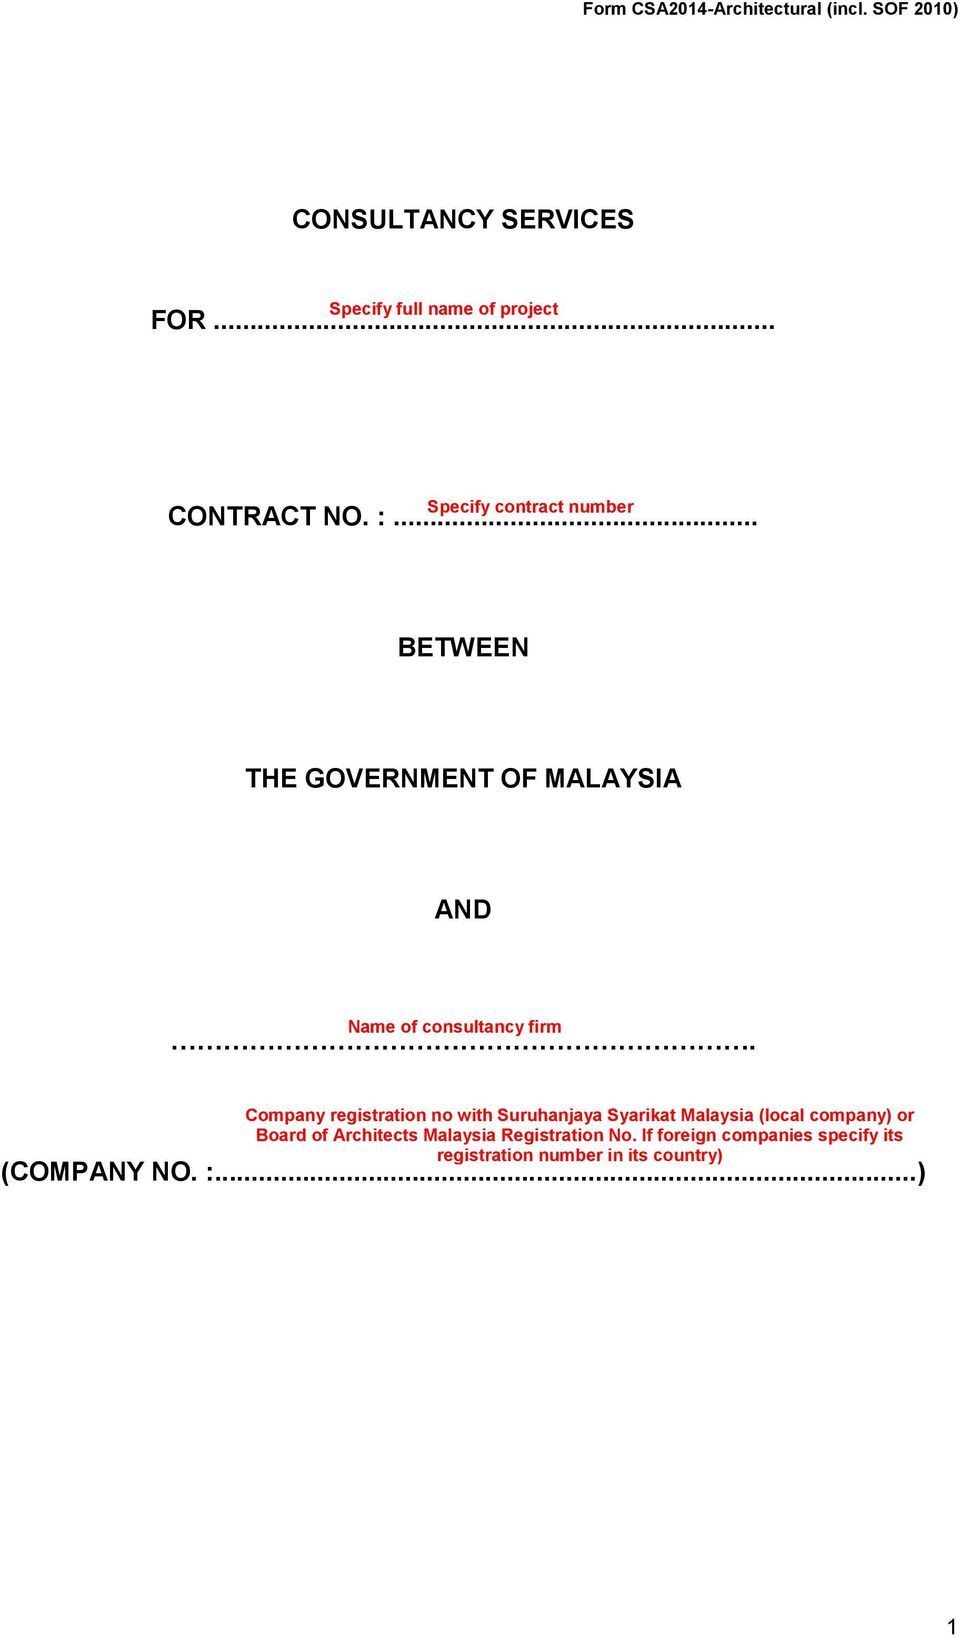 .. BETWEEN THE GOVERNMENT OF MALAYSIA AND Name of consultancy firm.